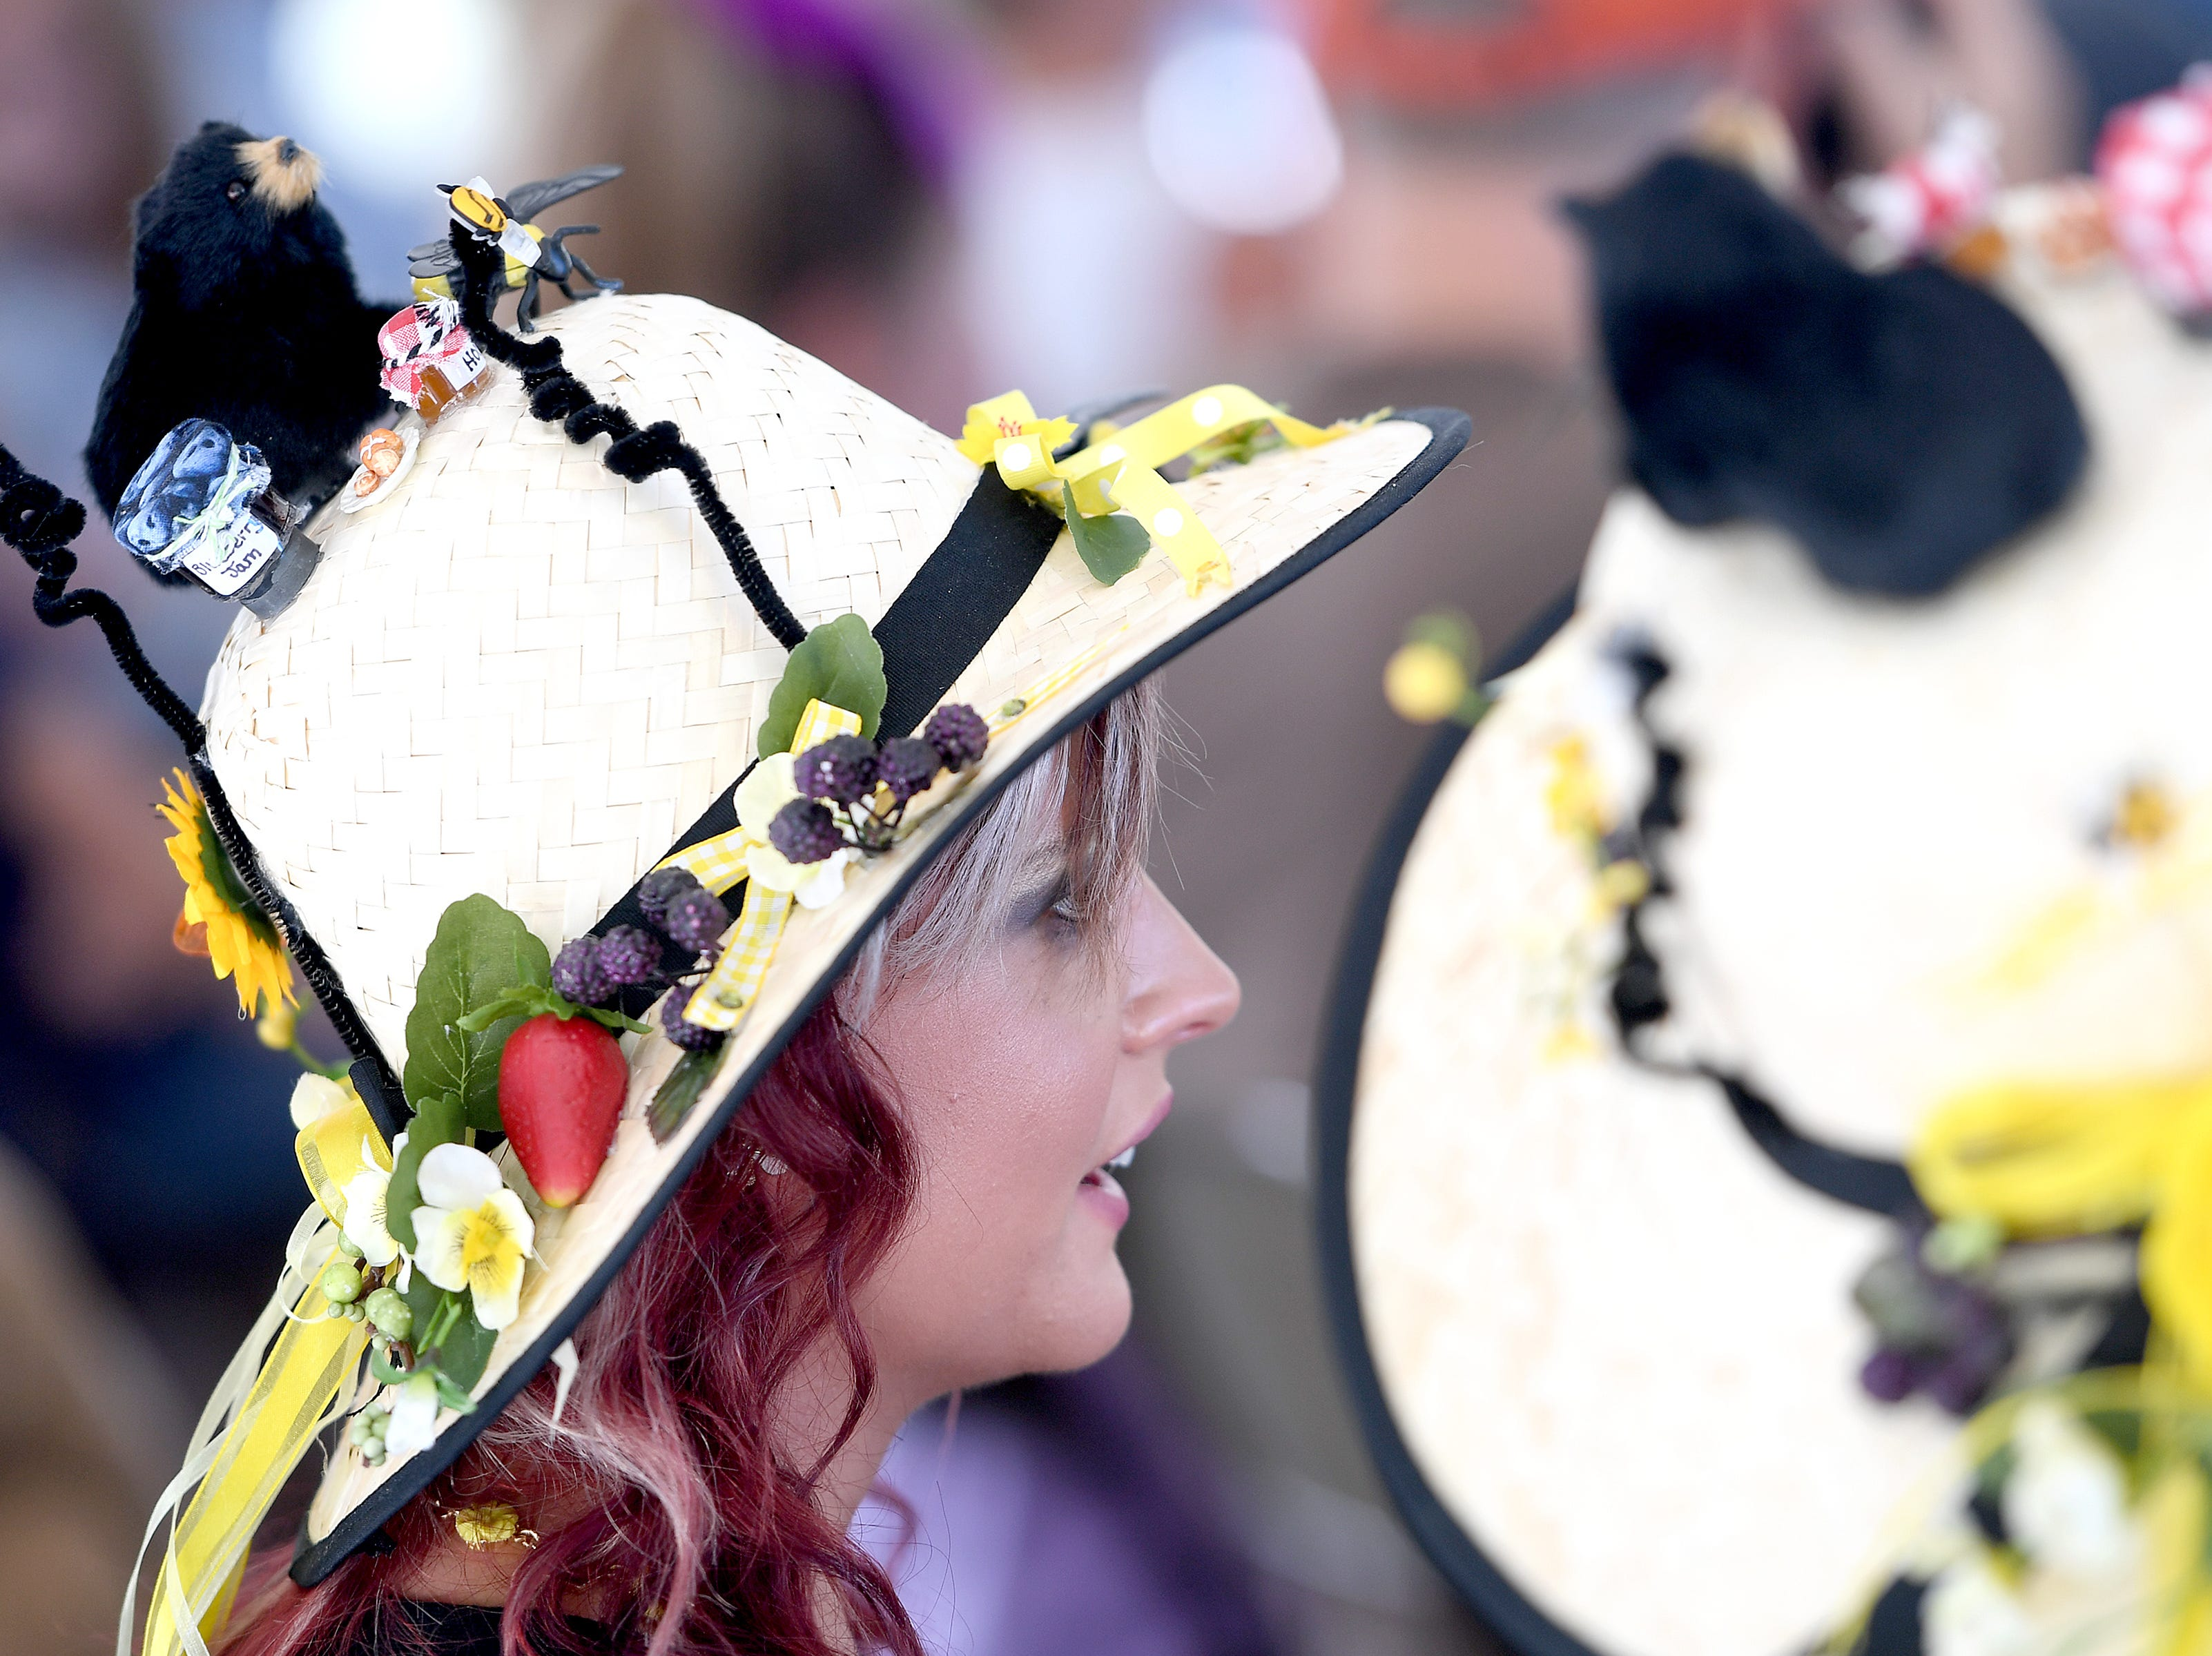 Linnea Puntigan, and her mother Laurlene Upton, both of Spartanburg, watch performances during the 41st annual Sourwood Festival in Black Mountain on Saturday, Aug. 11, 2018. Upton made their sourwood-inspired hats specifically for the festival to bring a smile to strangers' faces.